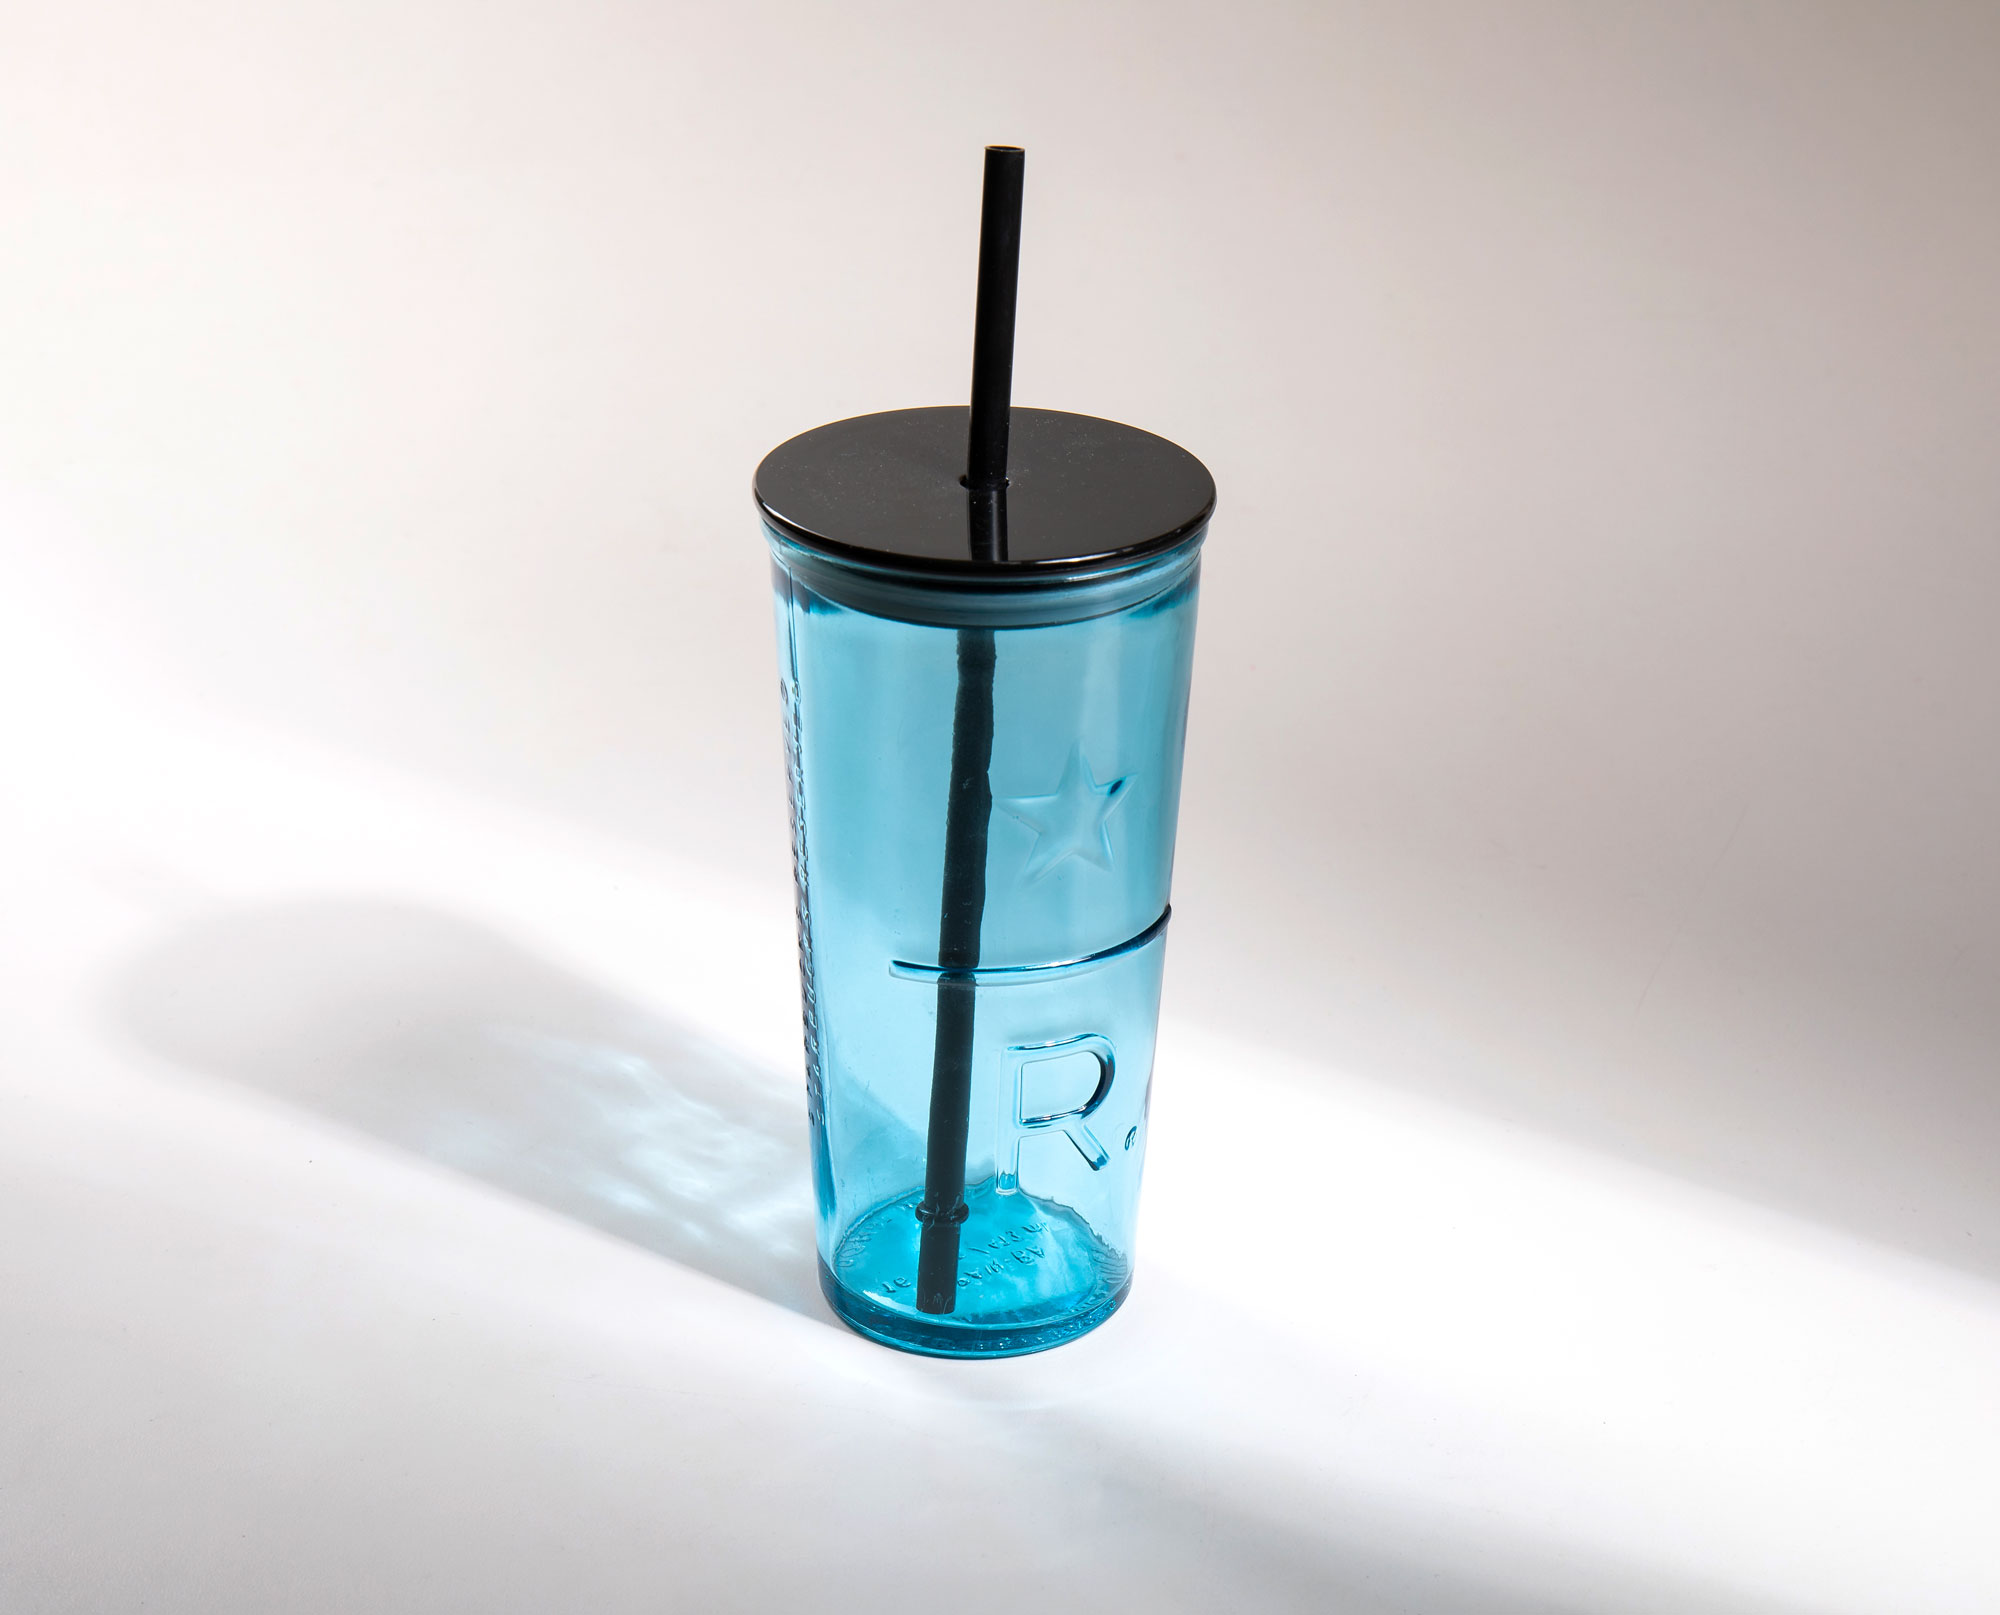 cold-Cup-reserve-merch-292.jpg